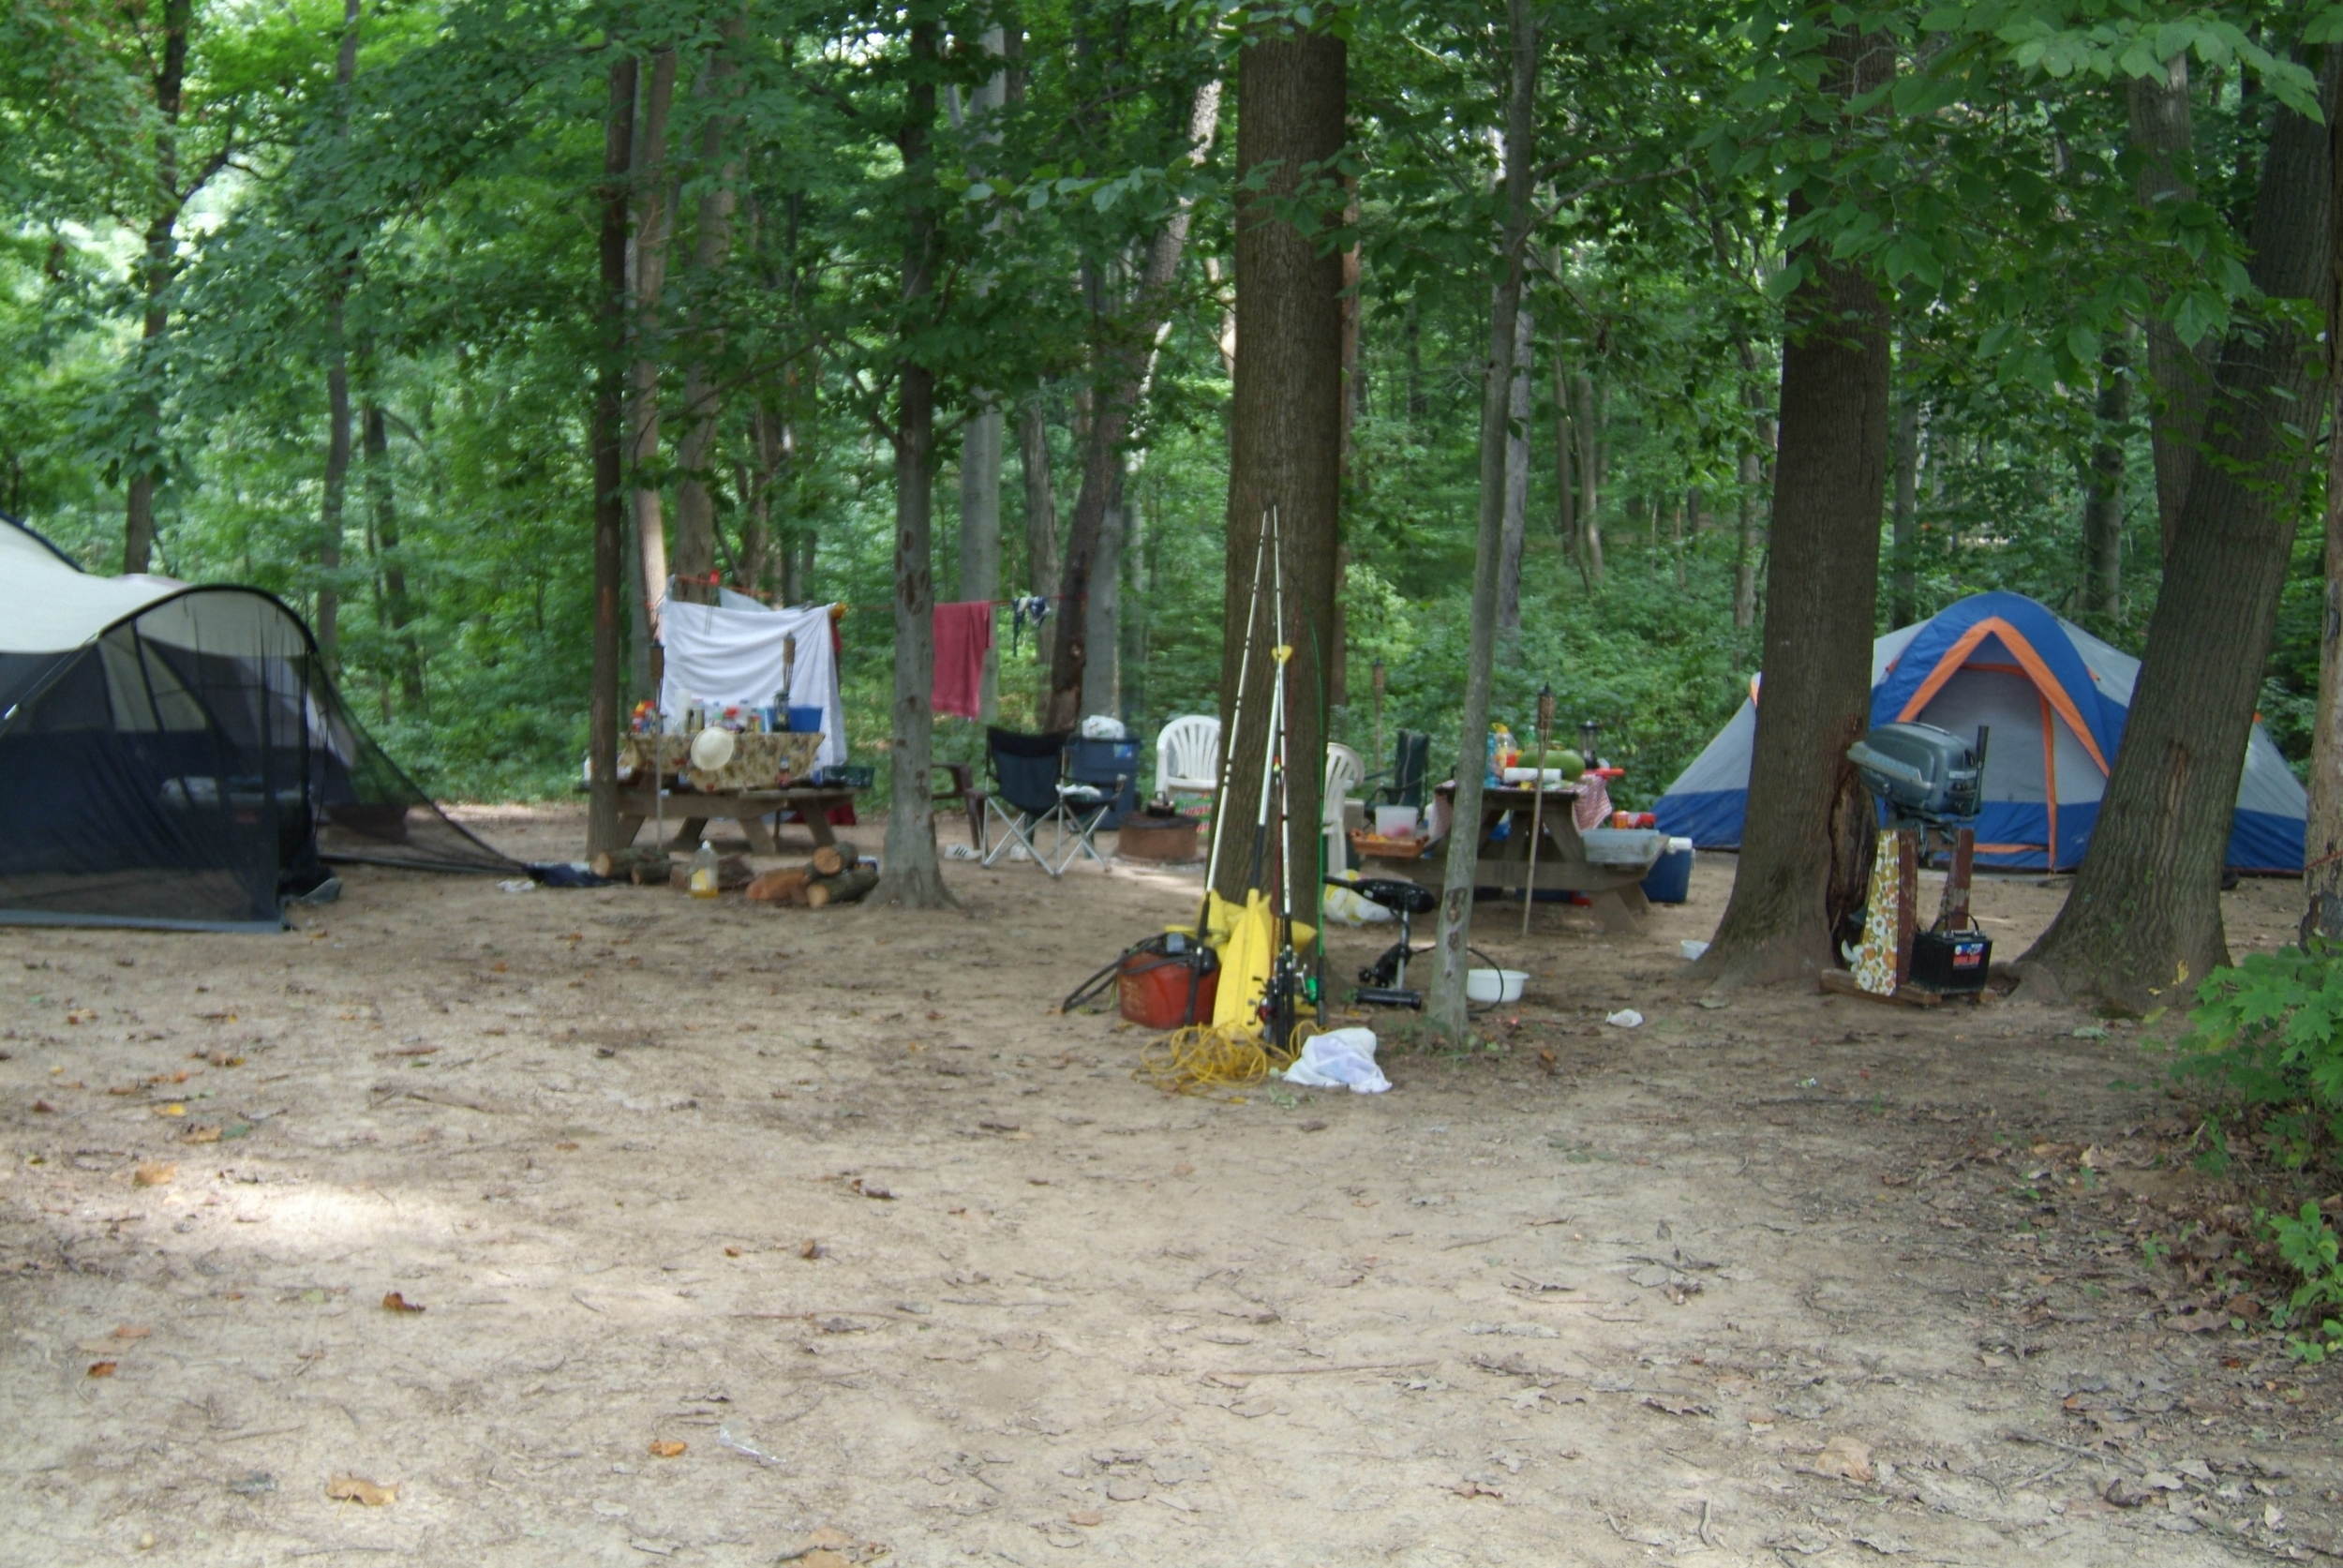 Plenty of space to spread out and set up the perfect camp  !